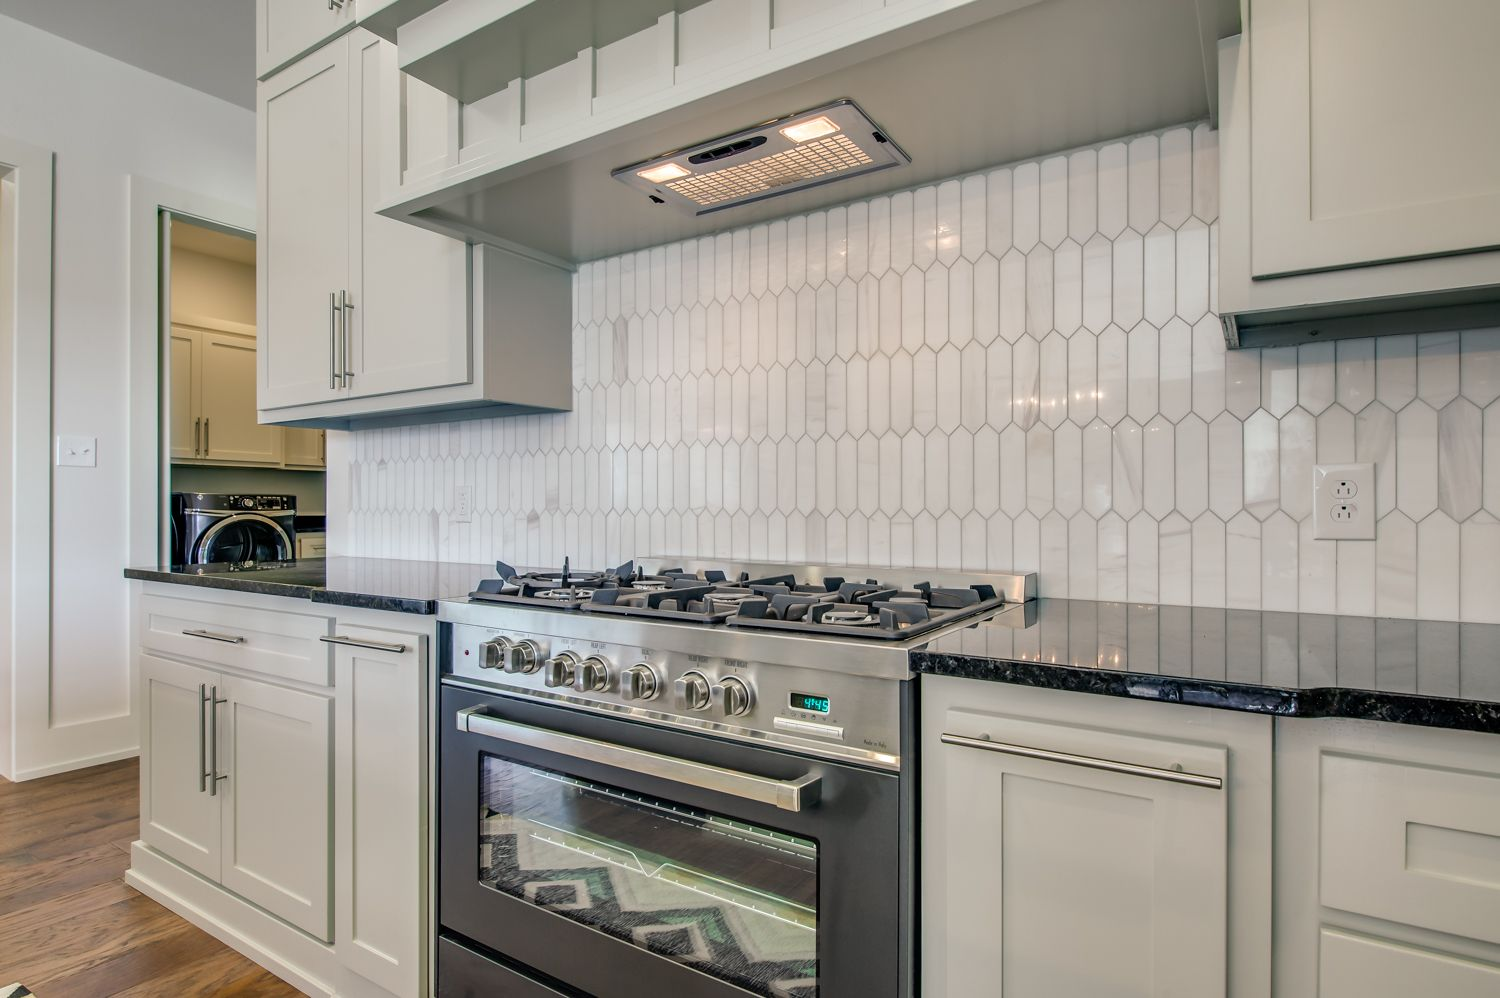 Form And Function Exemplified In The Meeting Of Custom Tile Work And Commercial Grade Appliances Kitchen Dining Room Kitchen Custom Tiles